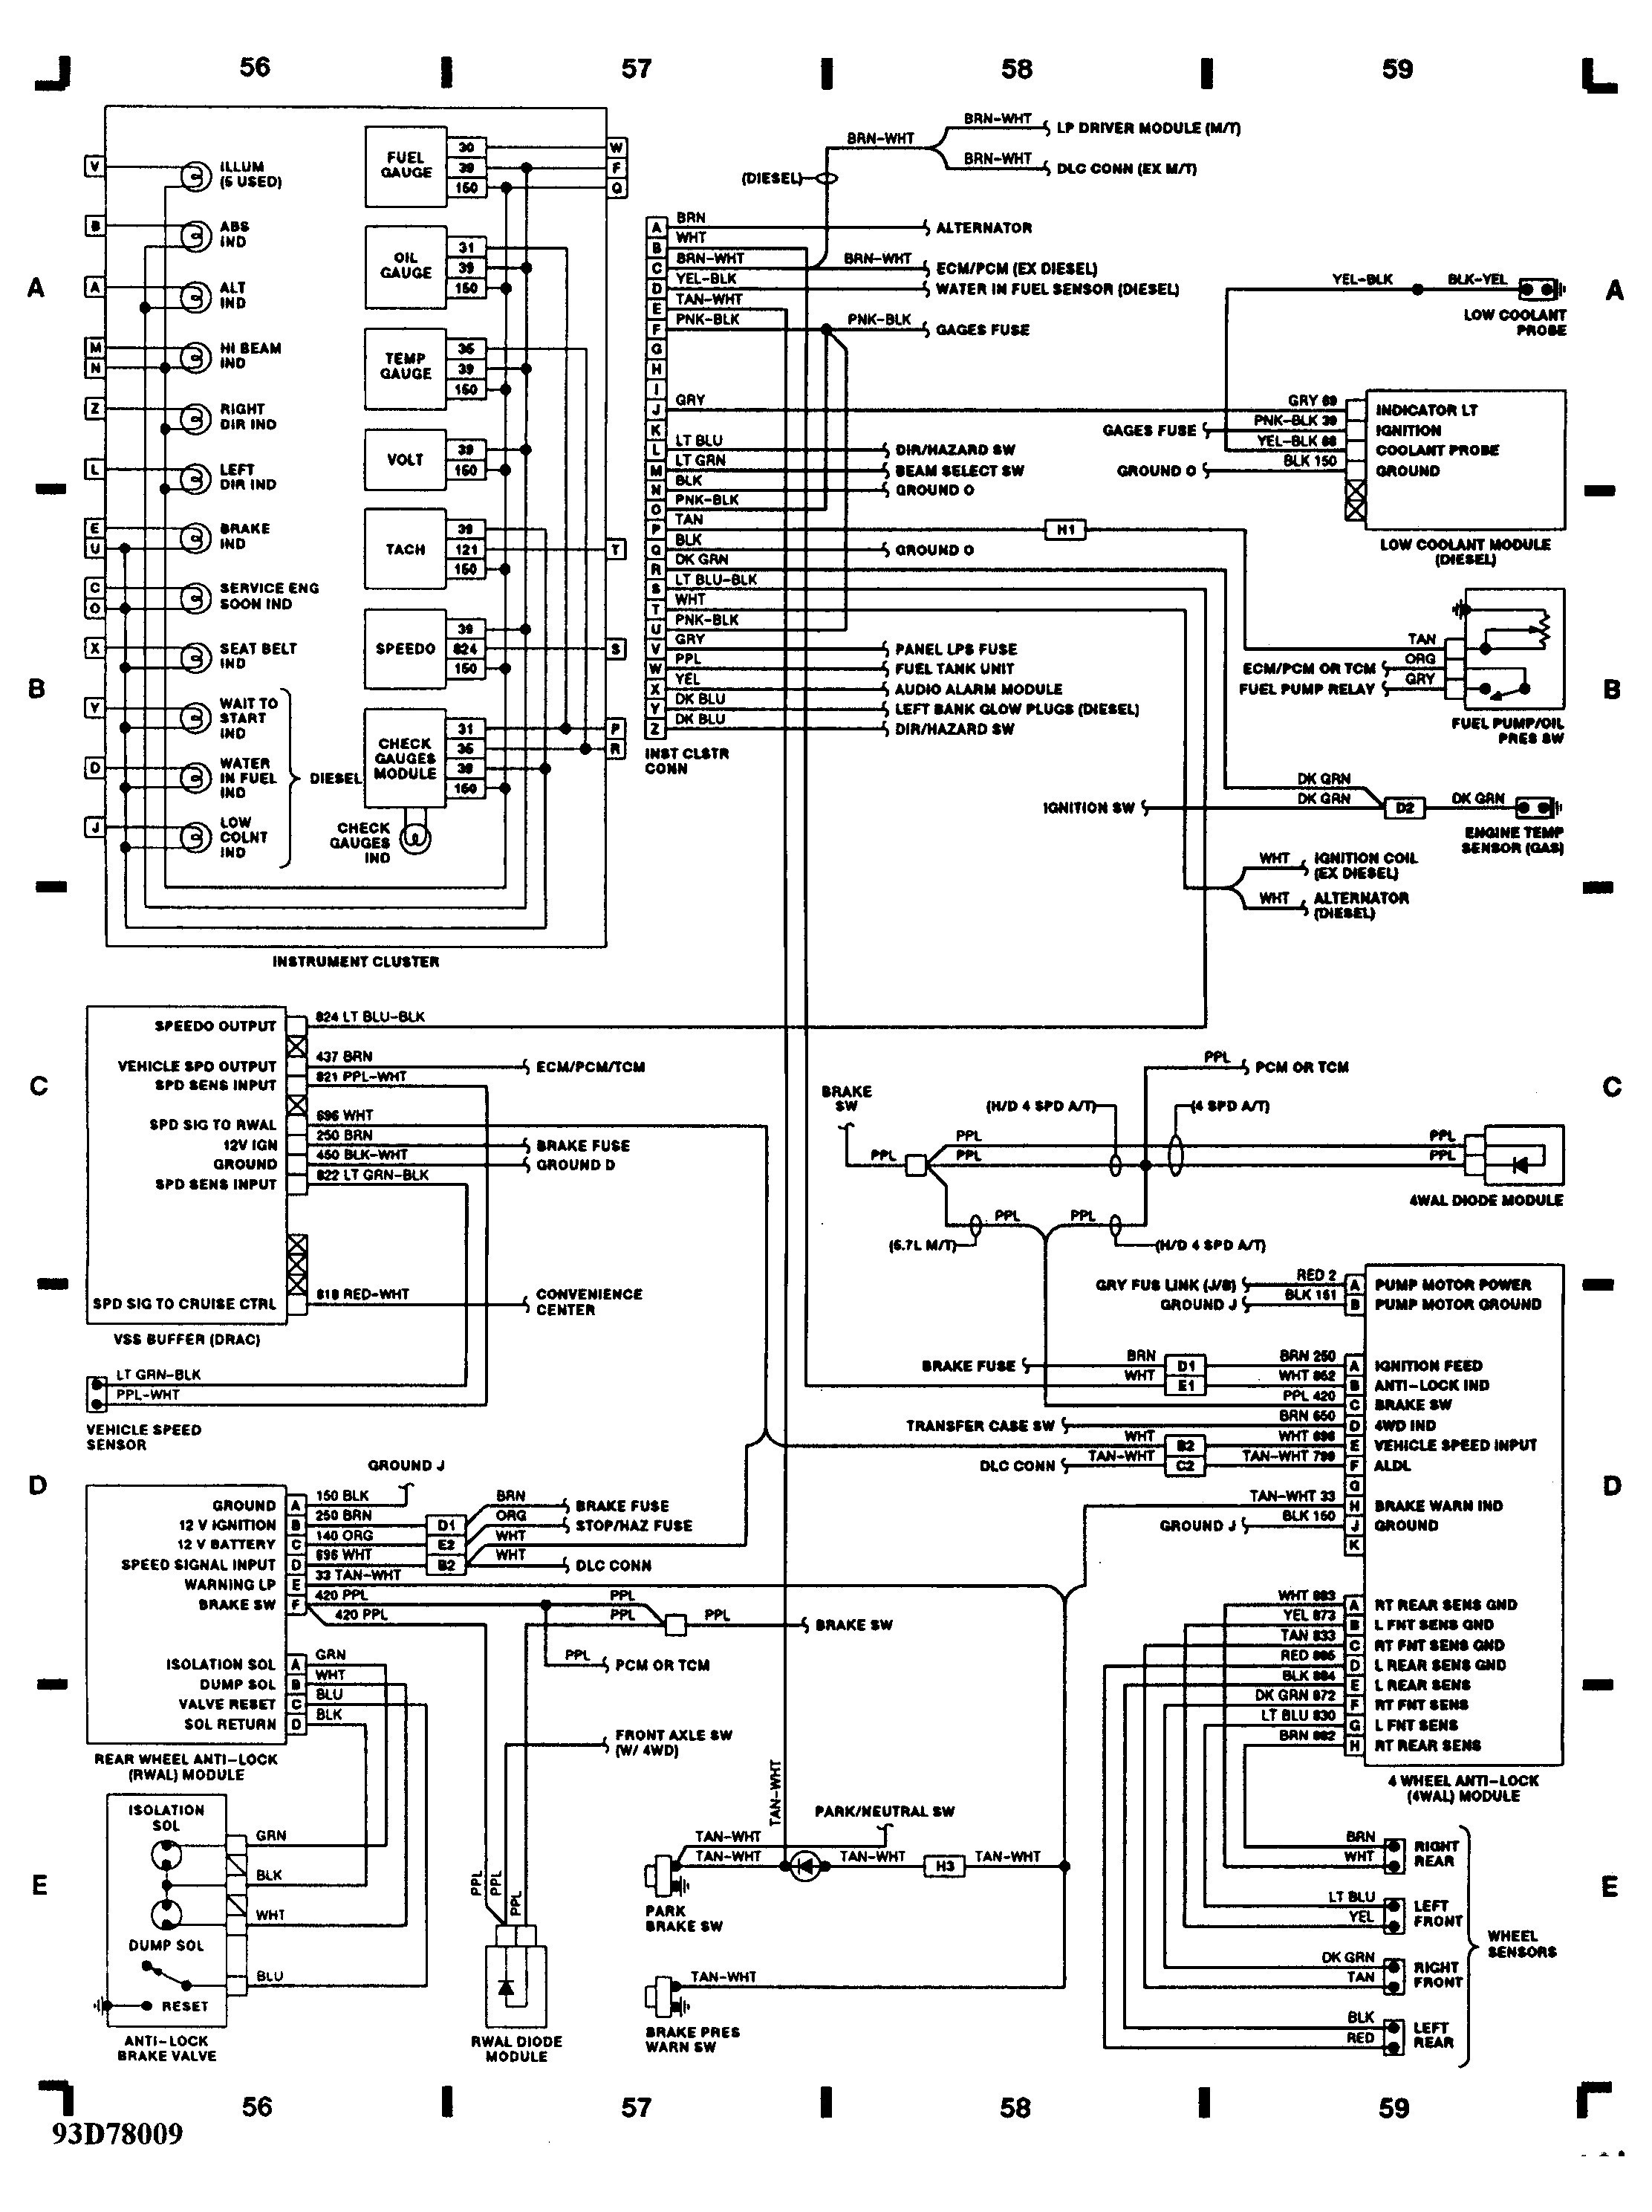 chevy s10 4 3 engine diagram trusted wiring diagrams u2022 rh sivamuni com